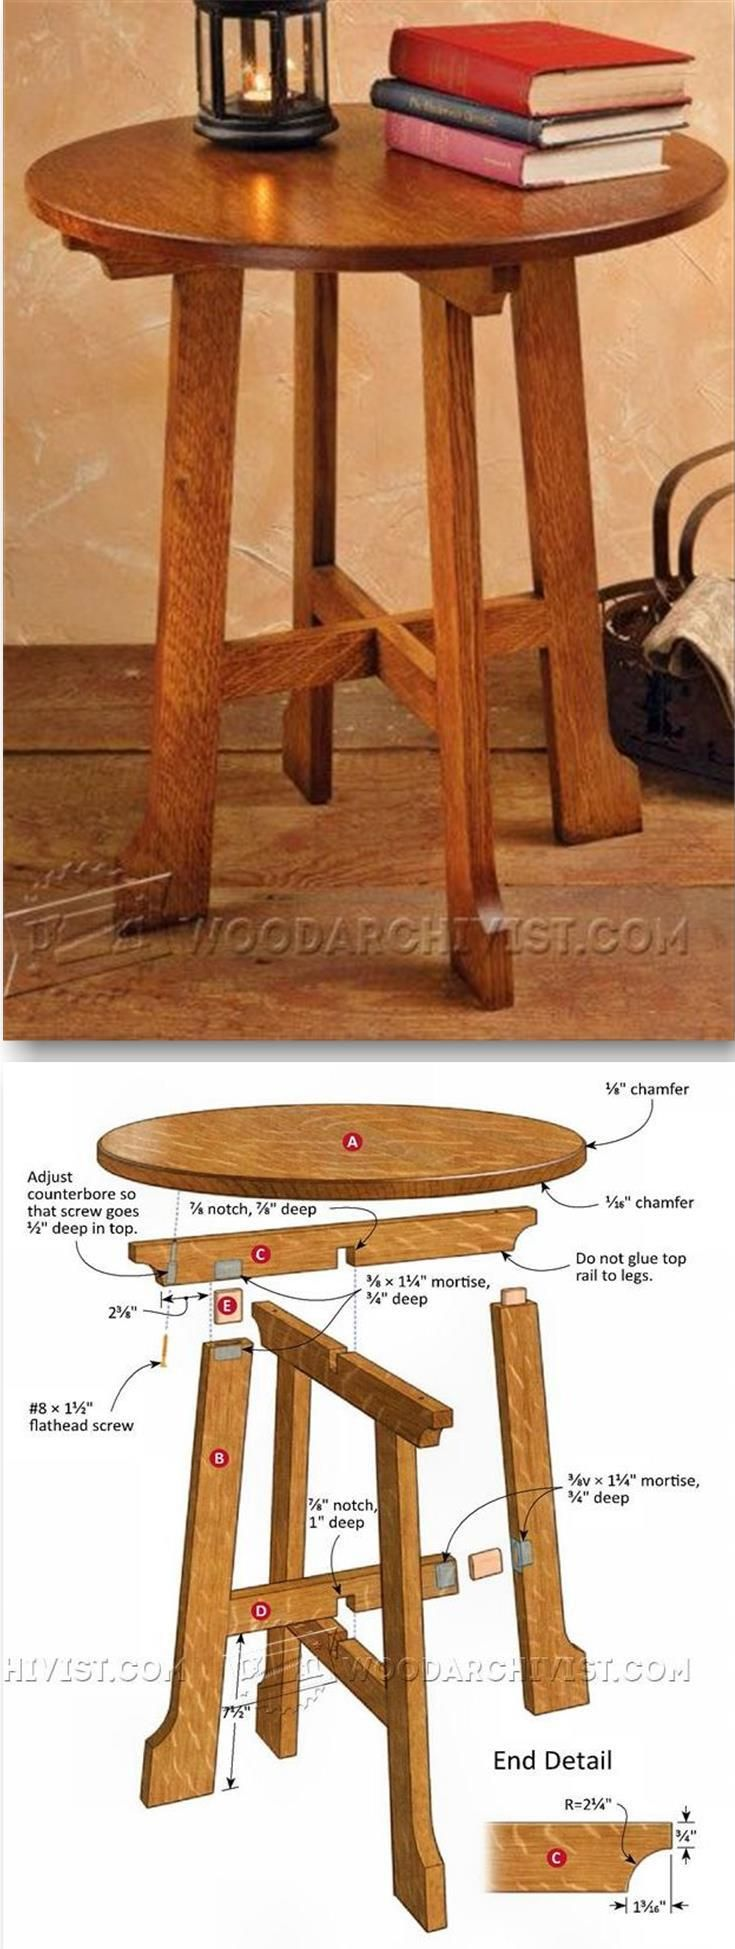 Arts and Crafts End Table Plans - Furniture Plans and Projects | WoodArchivist.com